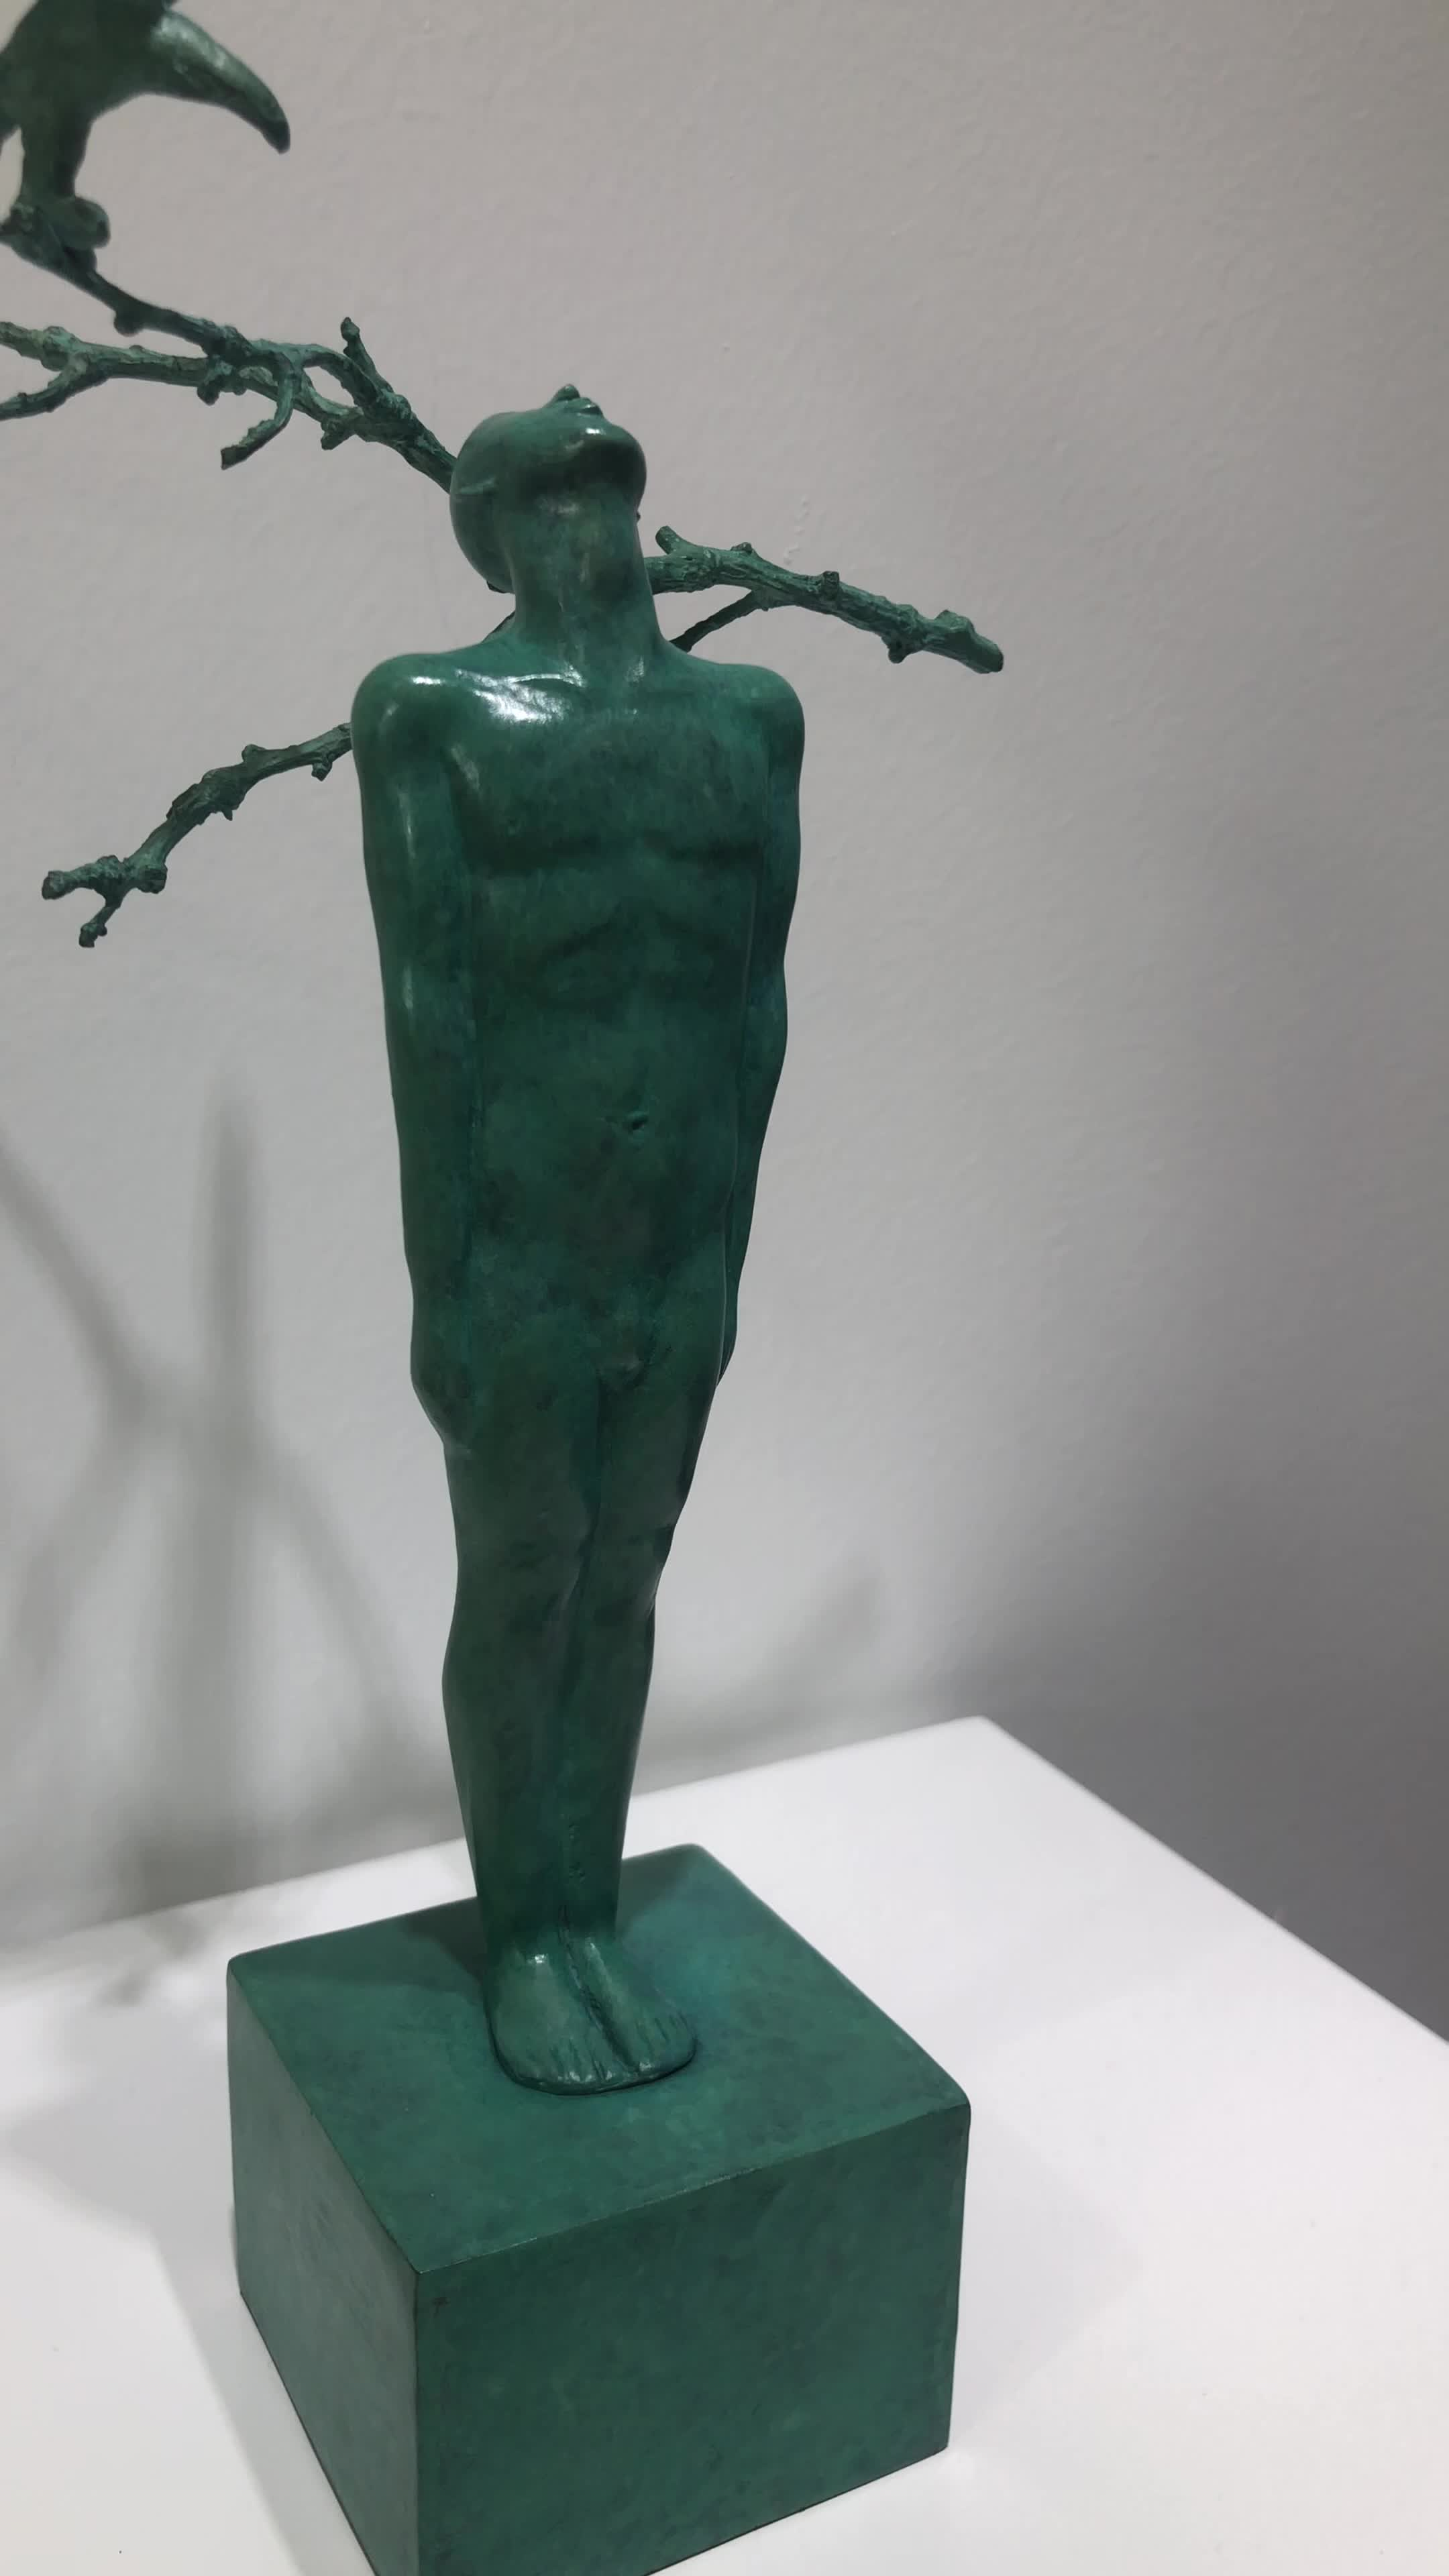 11*19*30 cm High quality green investment value bronze casting human and nature statue artwork